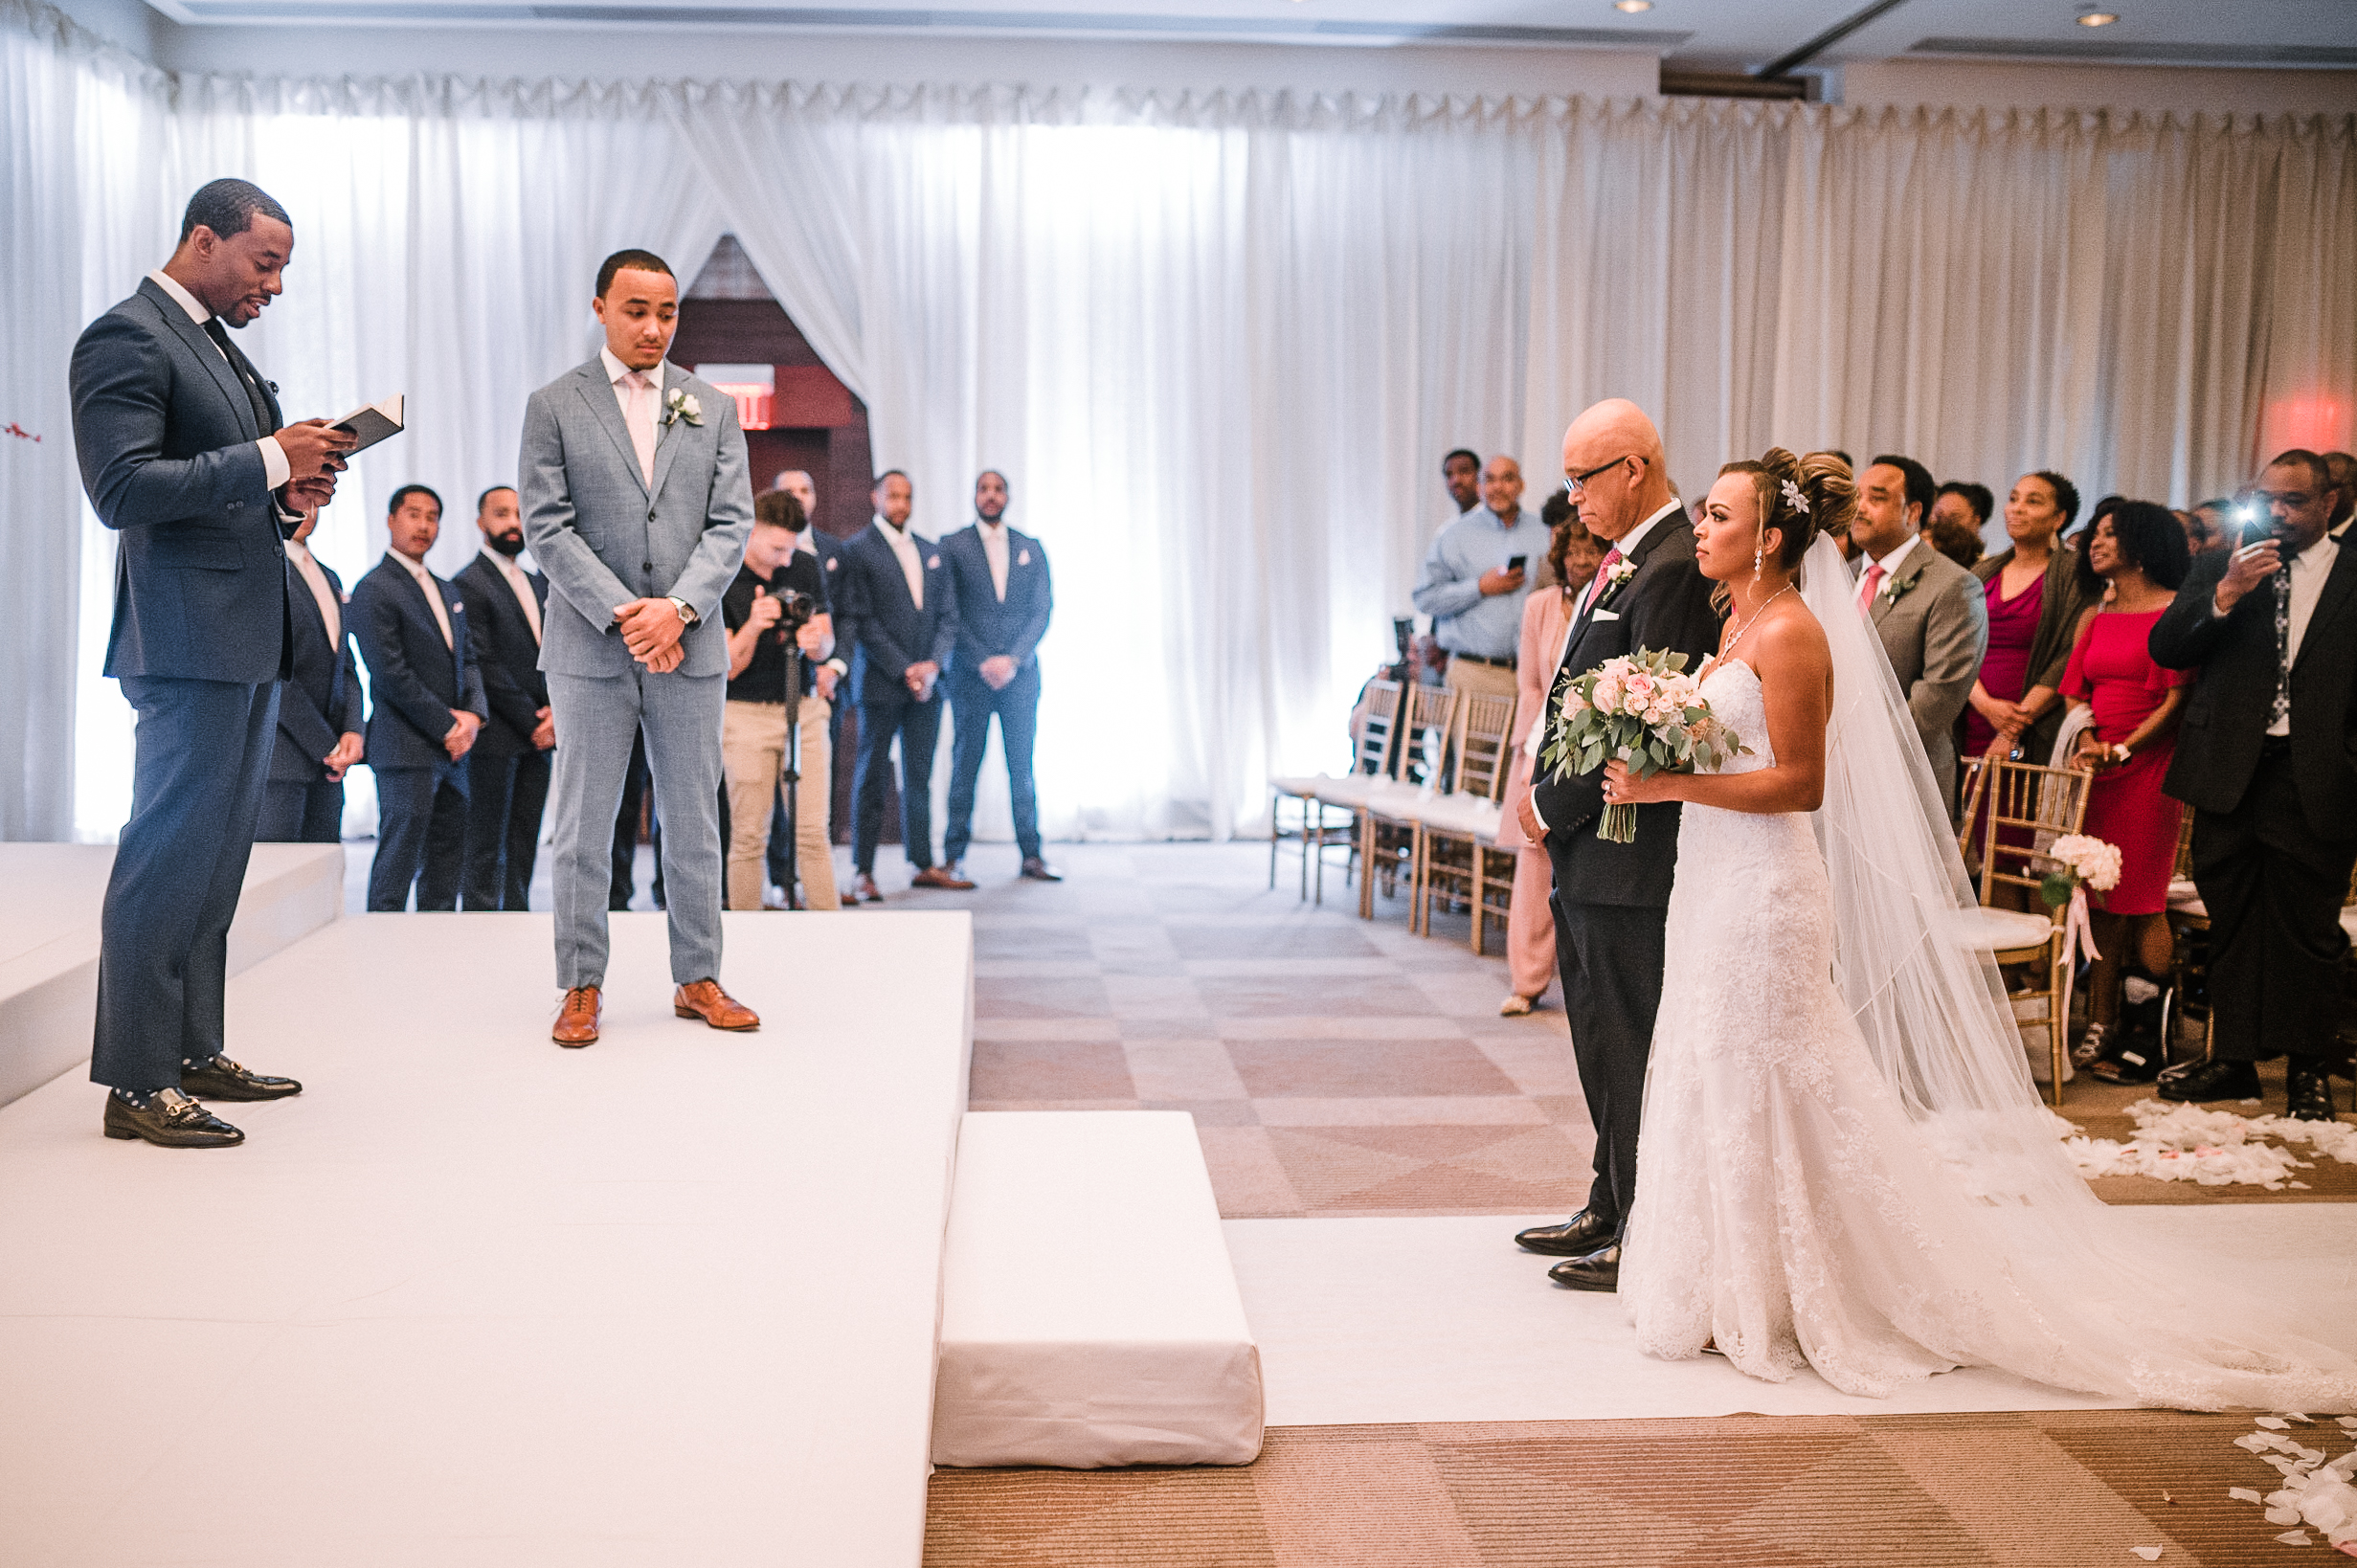 father of the bride giving bride away at The Park Hyatt Hotel in Washington DC